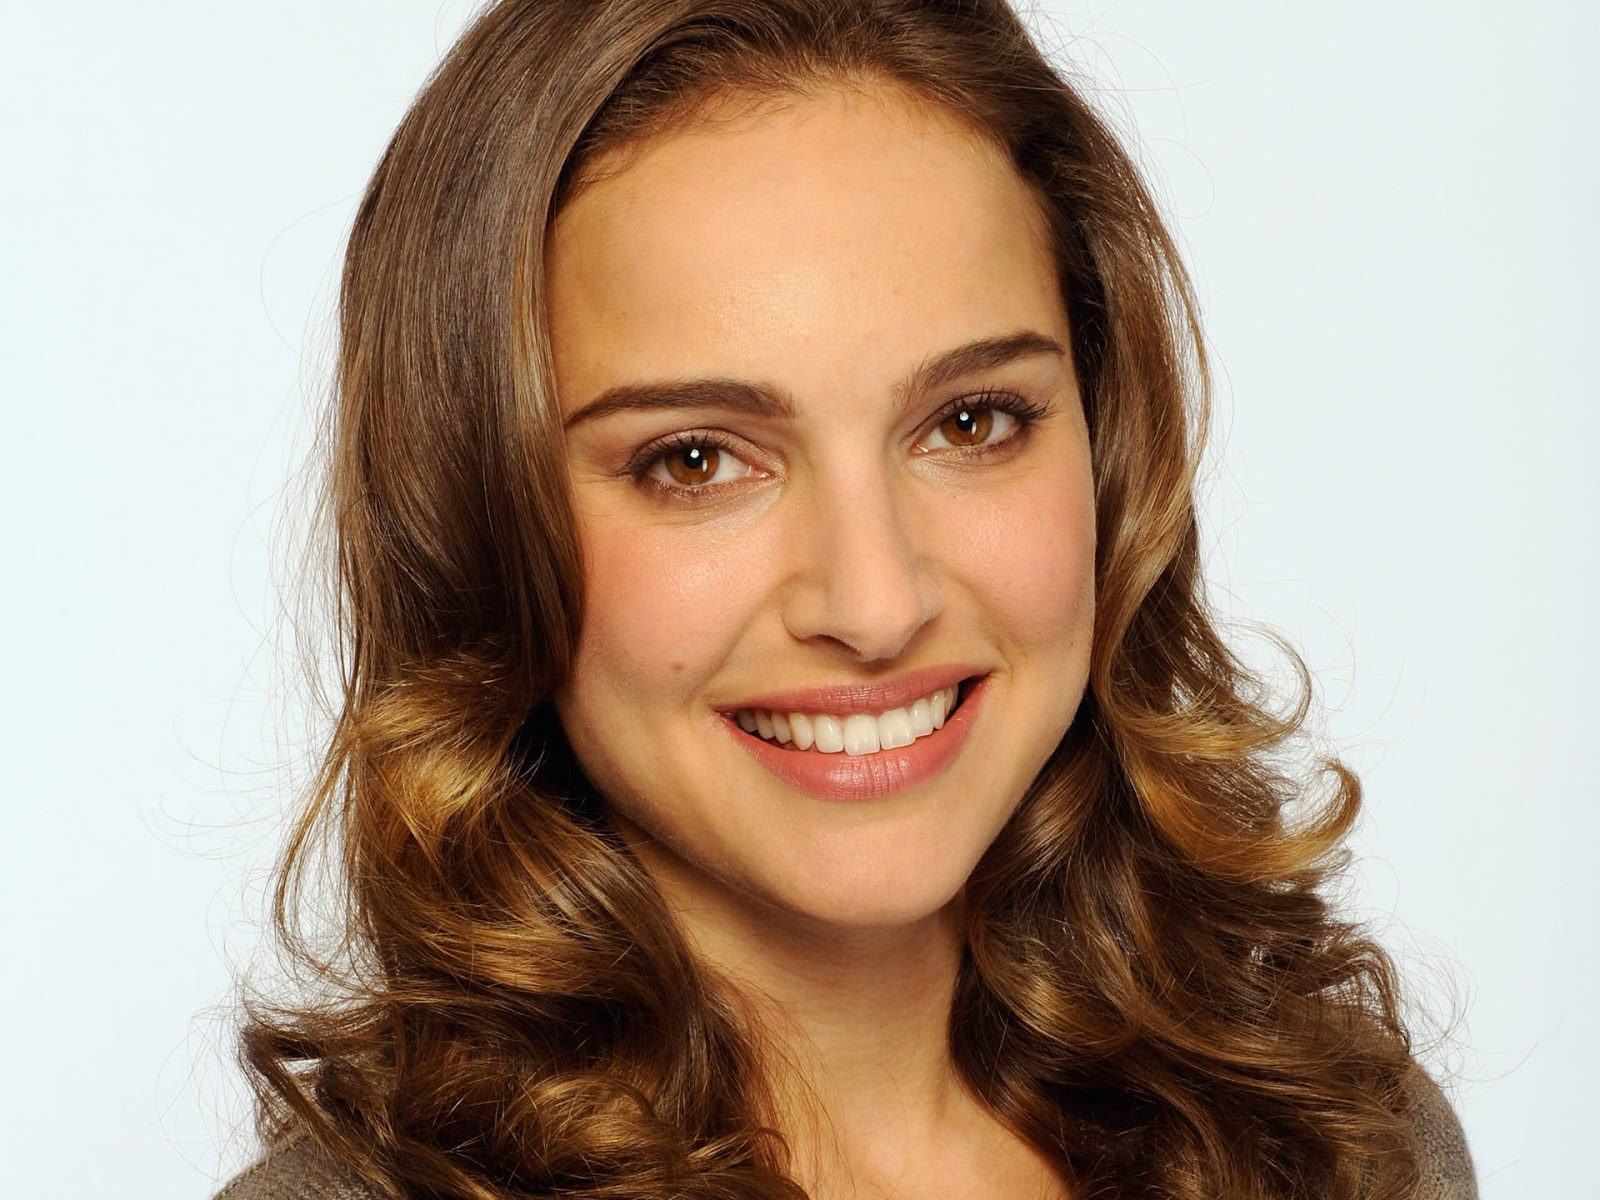 Natalie Portman HD Wallpapers Free Download